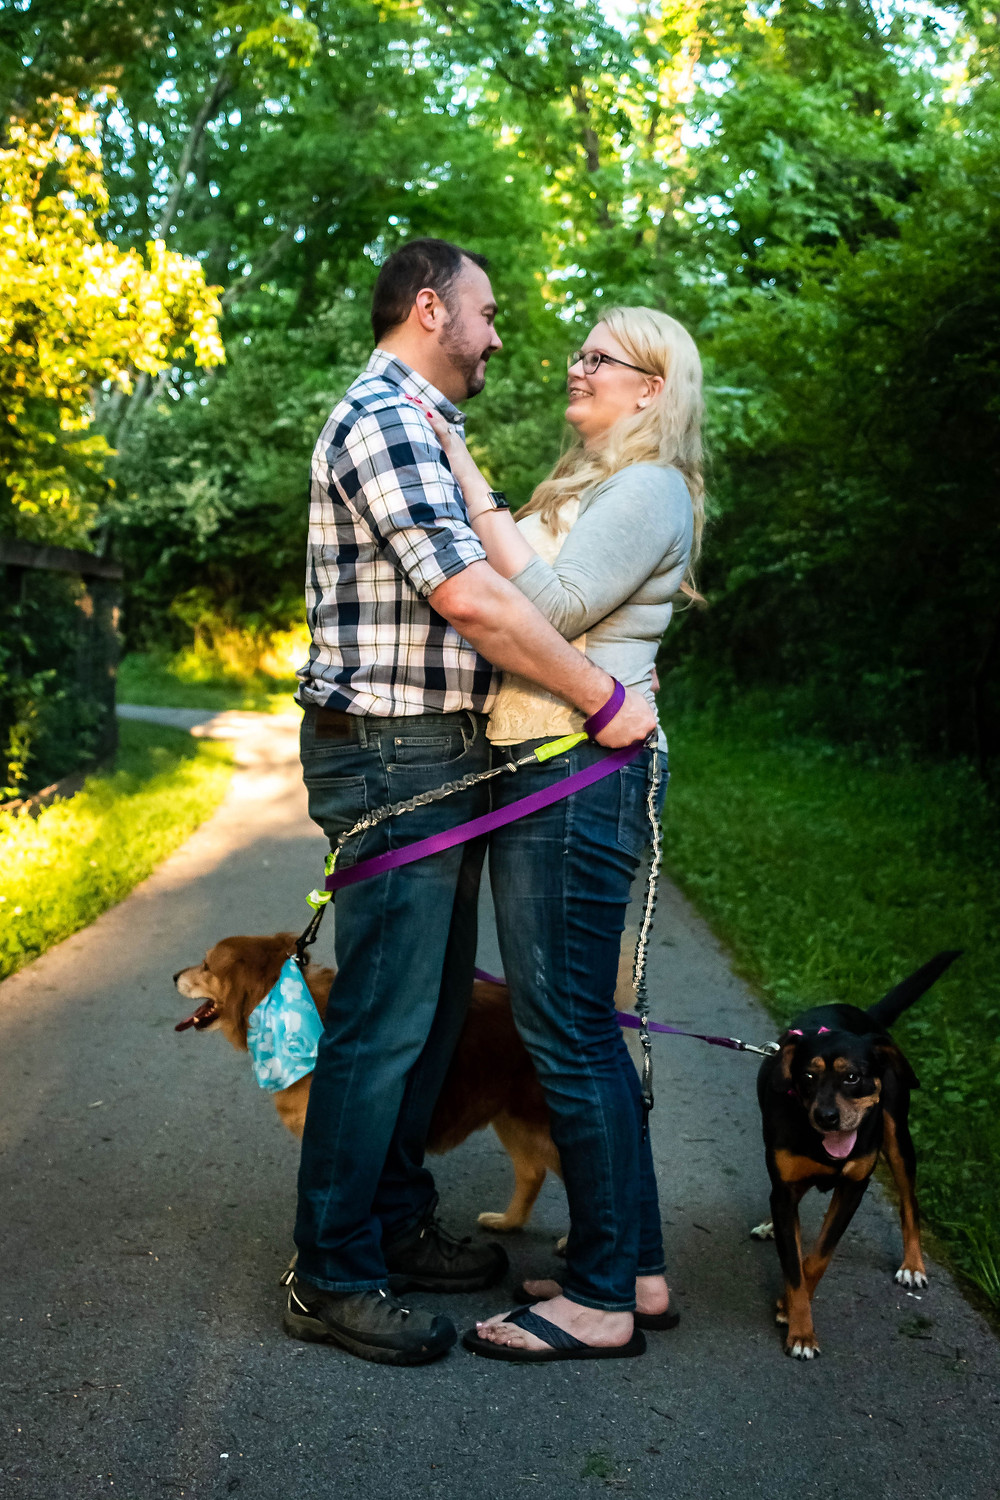 Cute couple face each other wrapped up in dog leashes at the Nashville Greenway